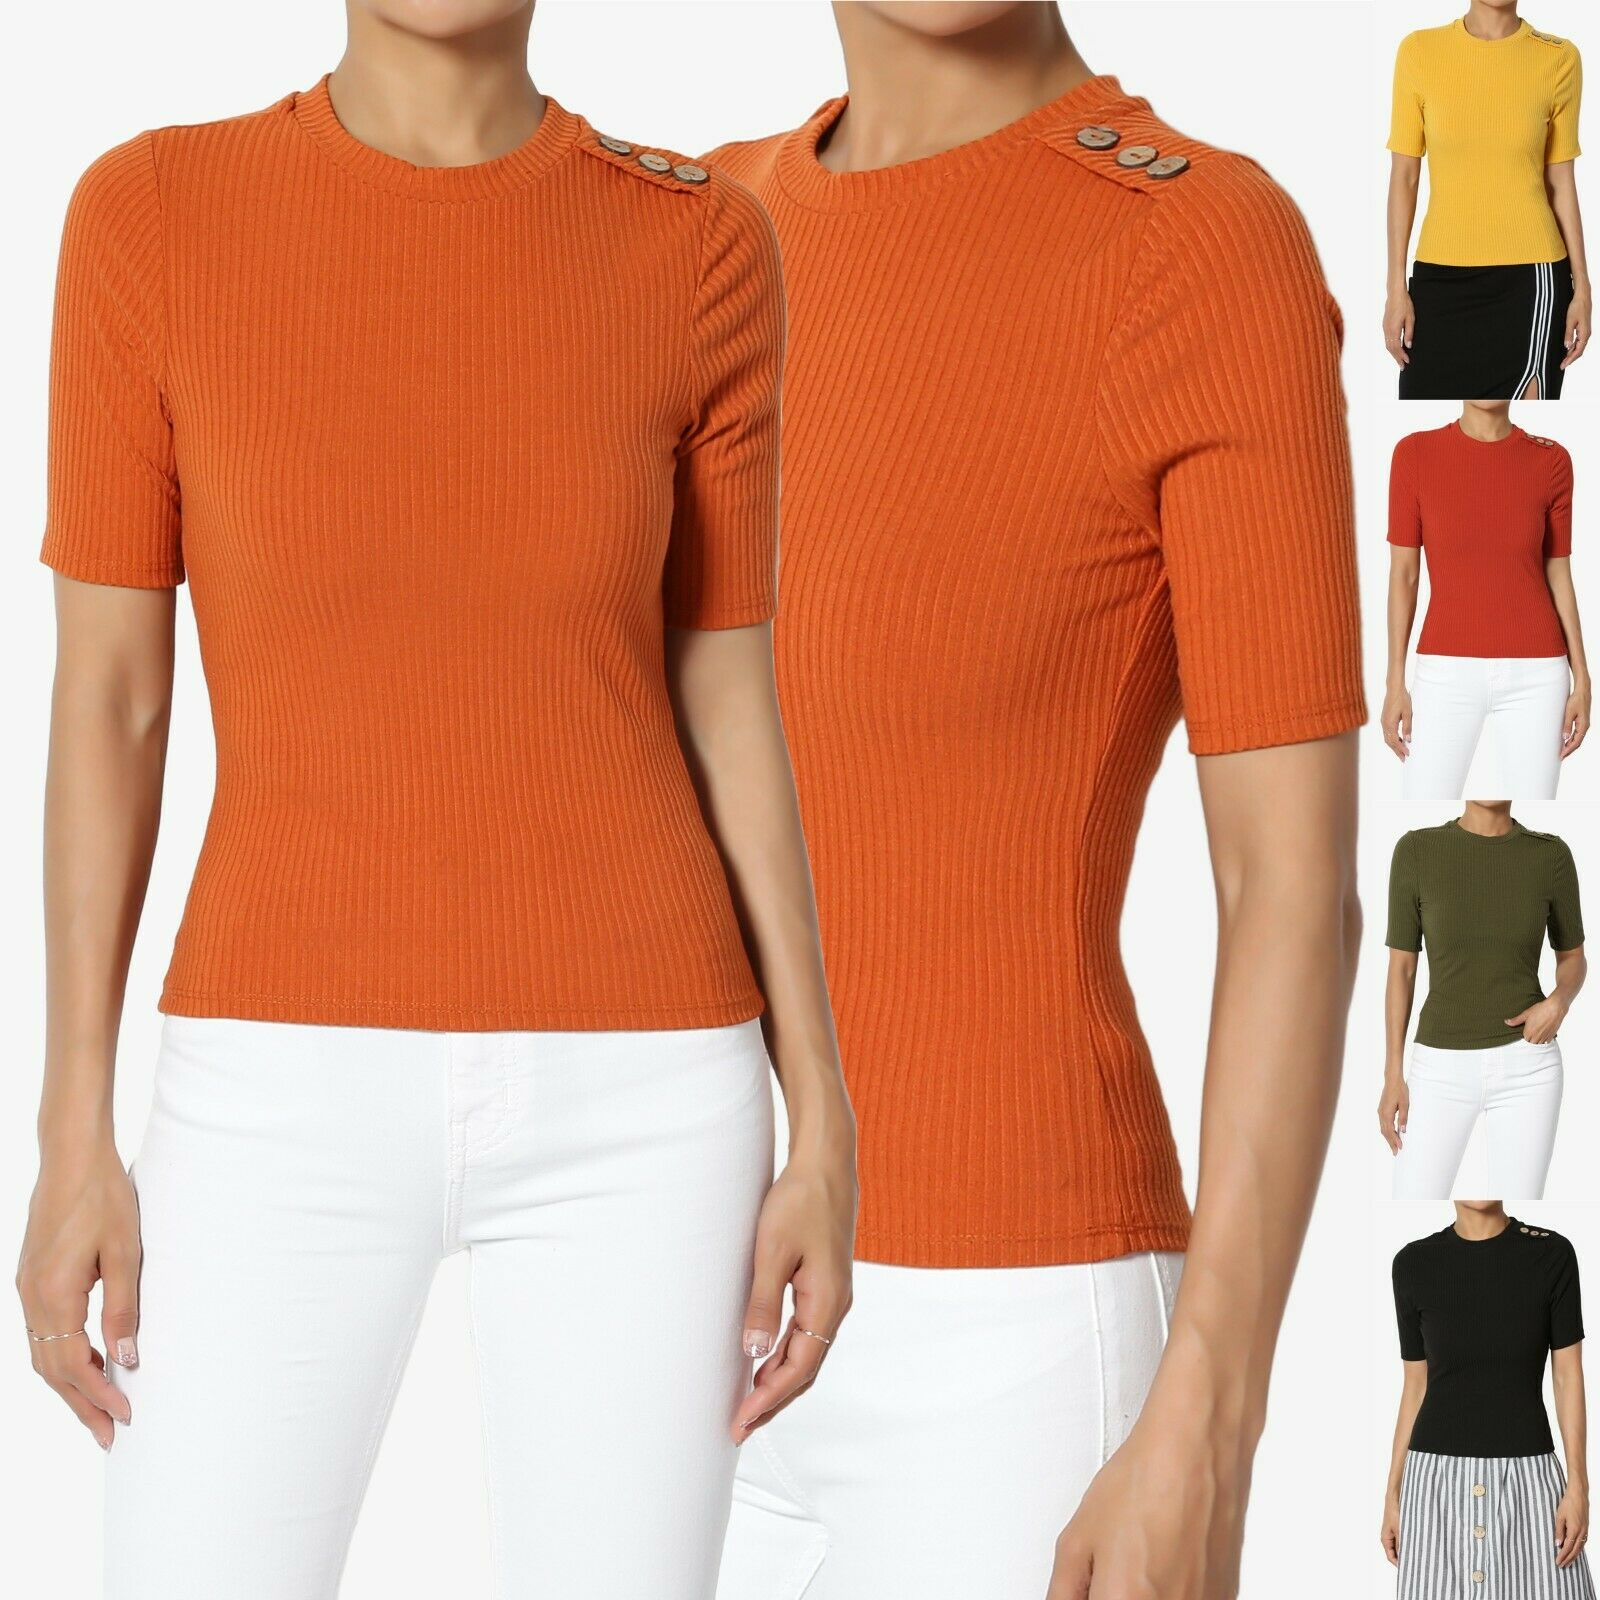 TheMogan Essential Crew Or V-Neck Short Sleeve Stretch Ribbed Fitted Top T-Shirt